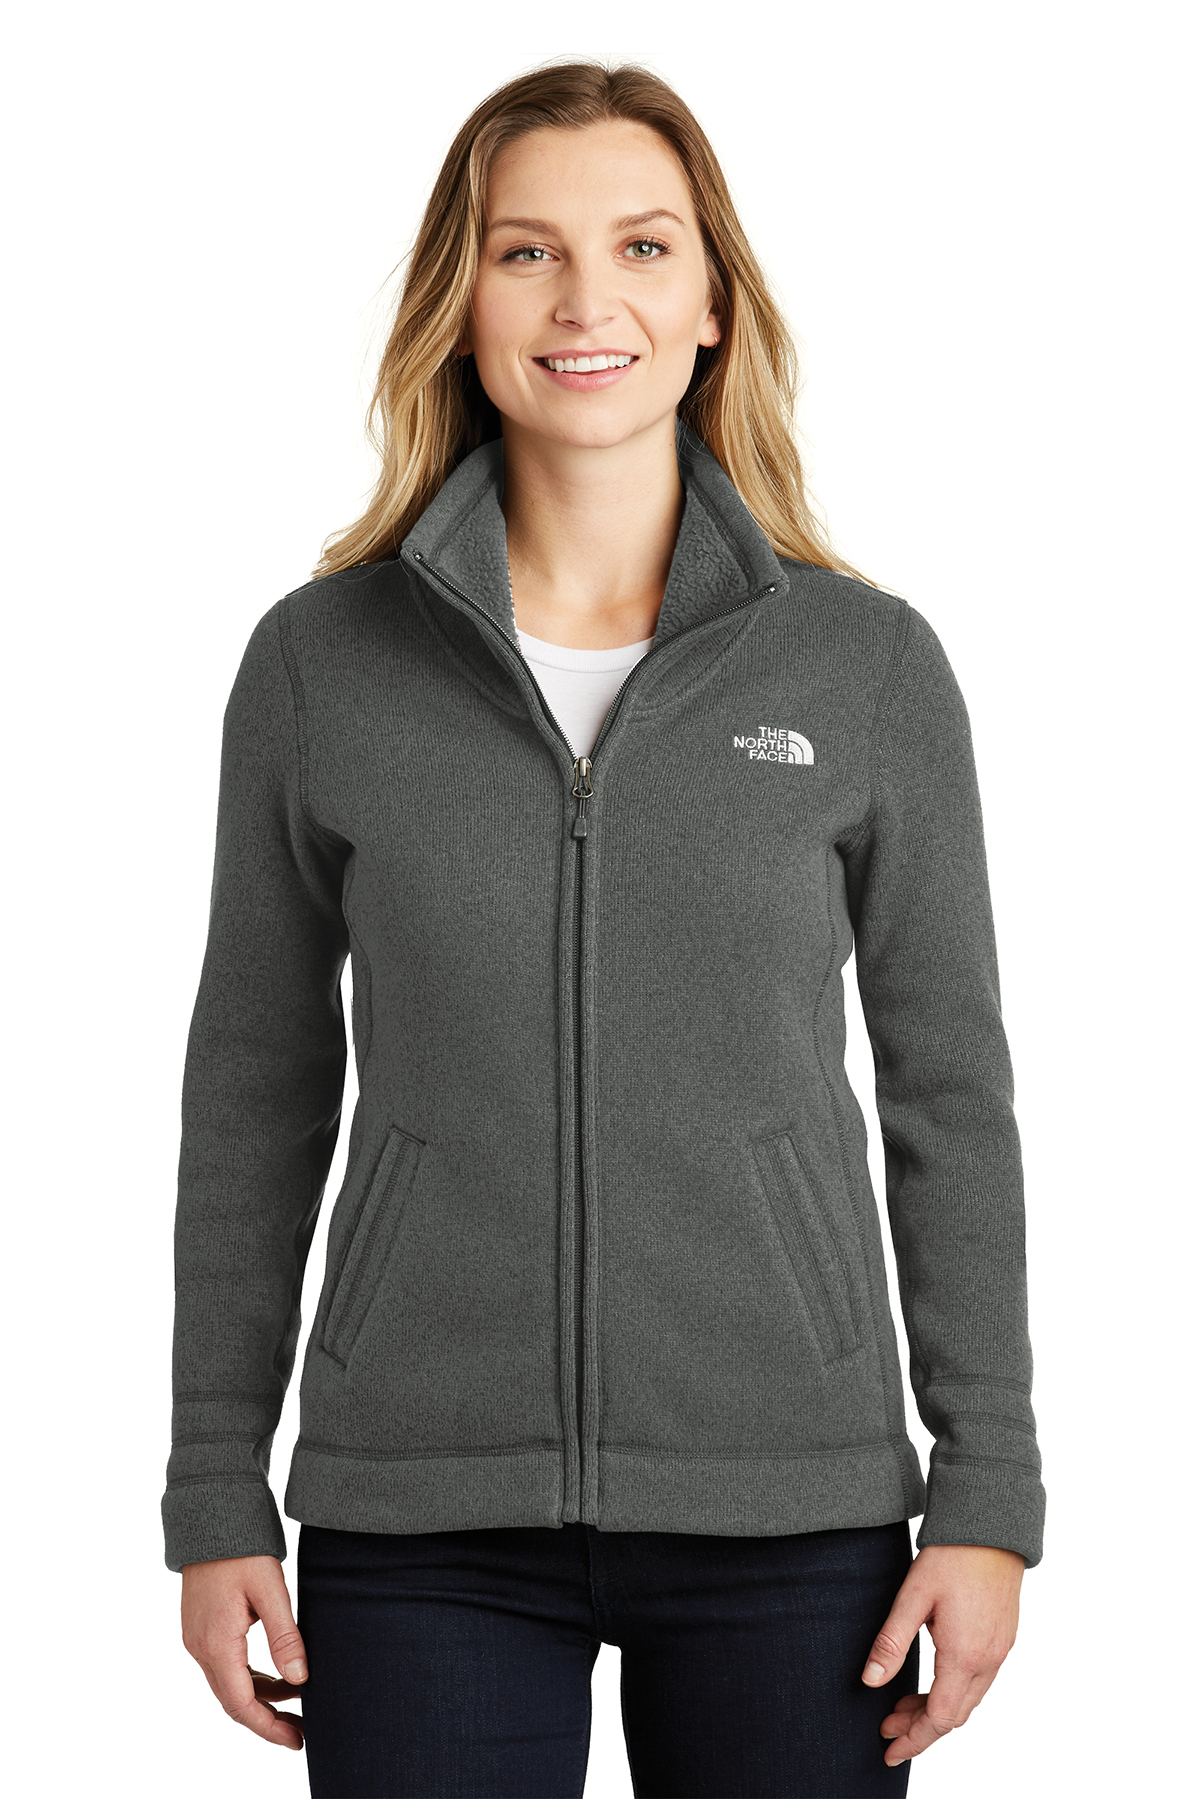 The North Face® NF0A3LH8 - Ladies Sweater Fleece Jacket